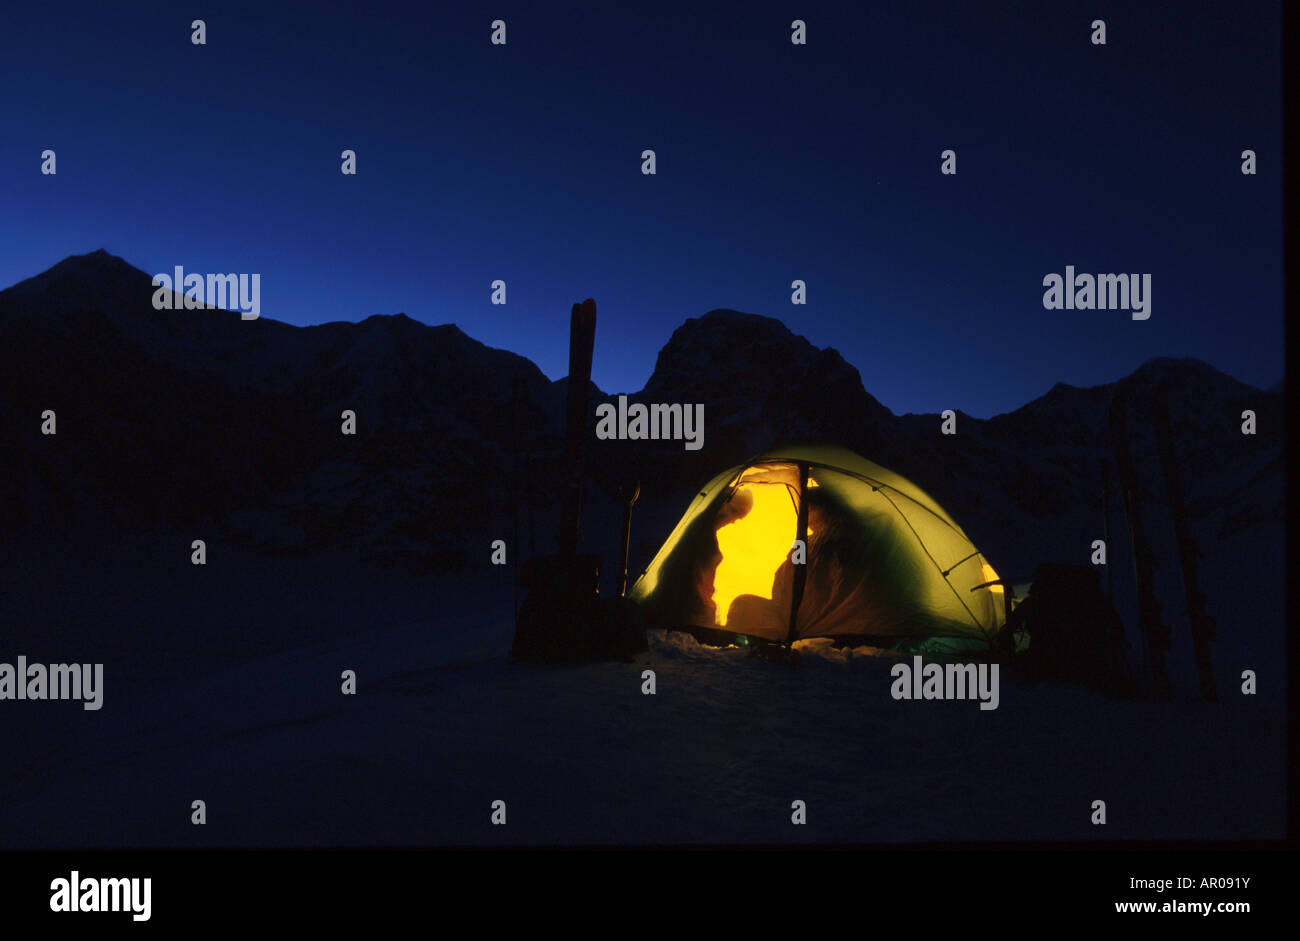 Couple Inside Glowing Tent Ruth Amphitheater Inerior AK Alaska Range Night & Couple Inside Glowing Tent Ruth Amphitheater Inerior AK Alaska ...